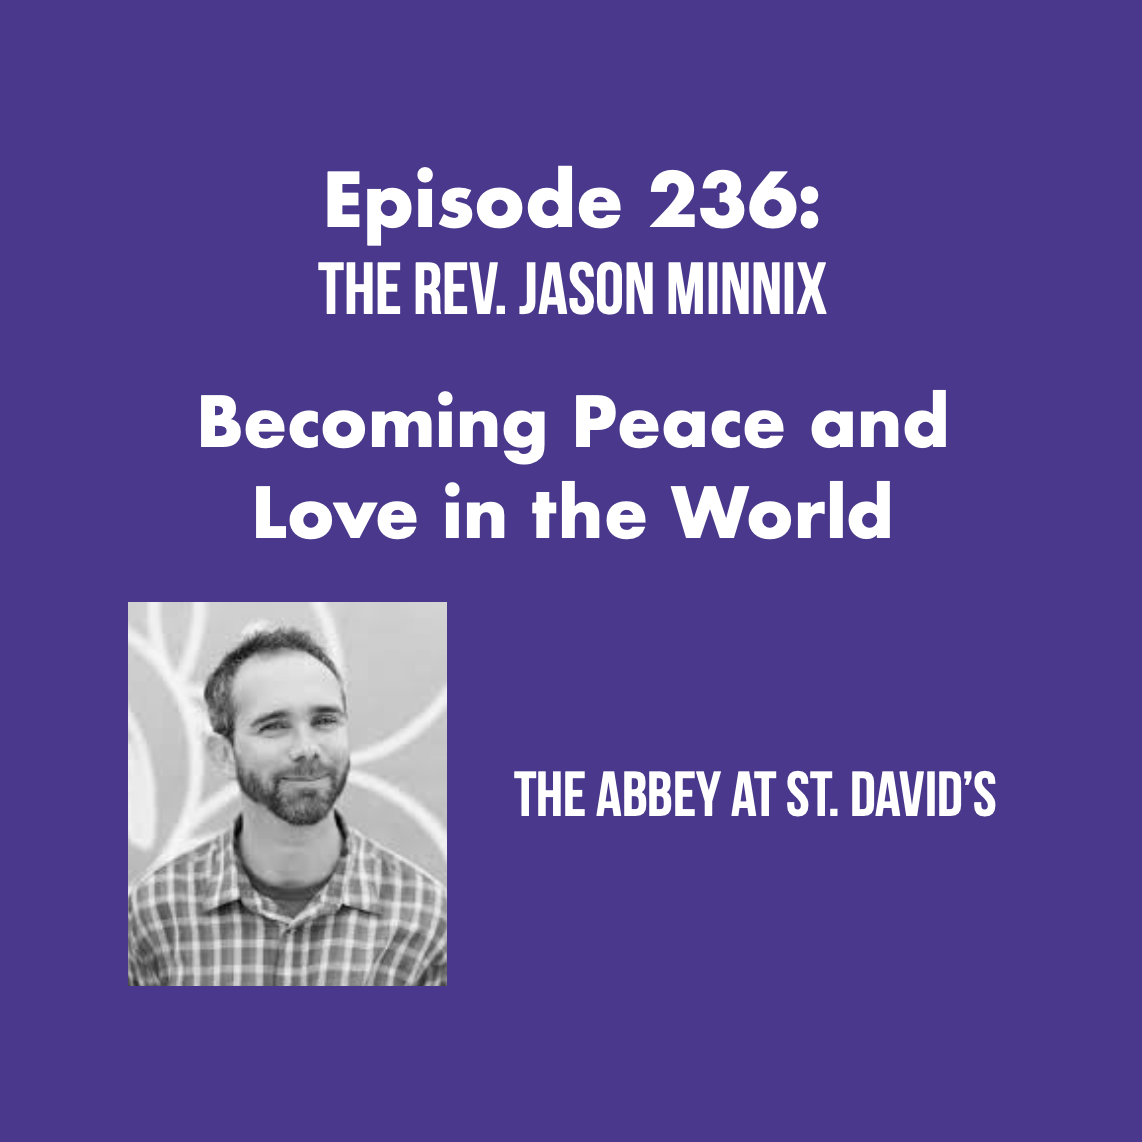 Episode 236: Becoming Peace and Love in the World with The Rev. Jason Minnix